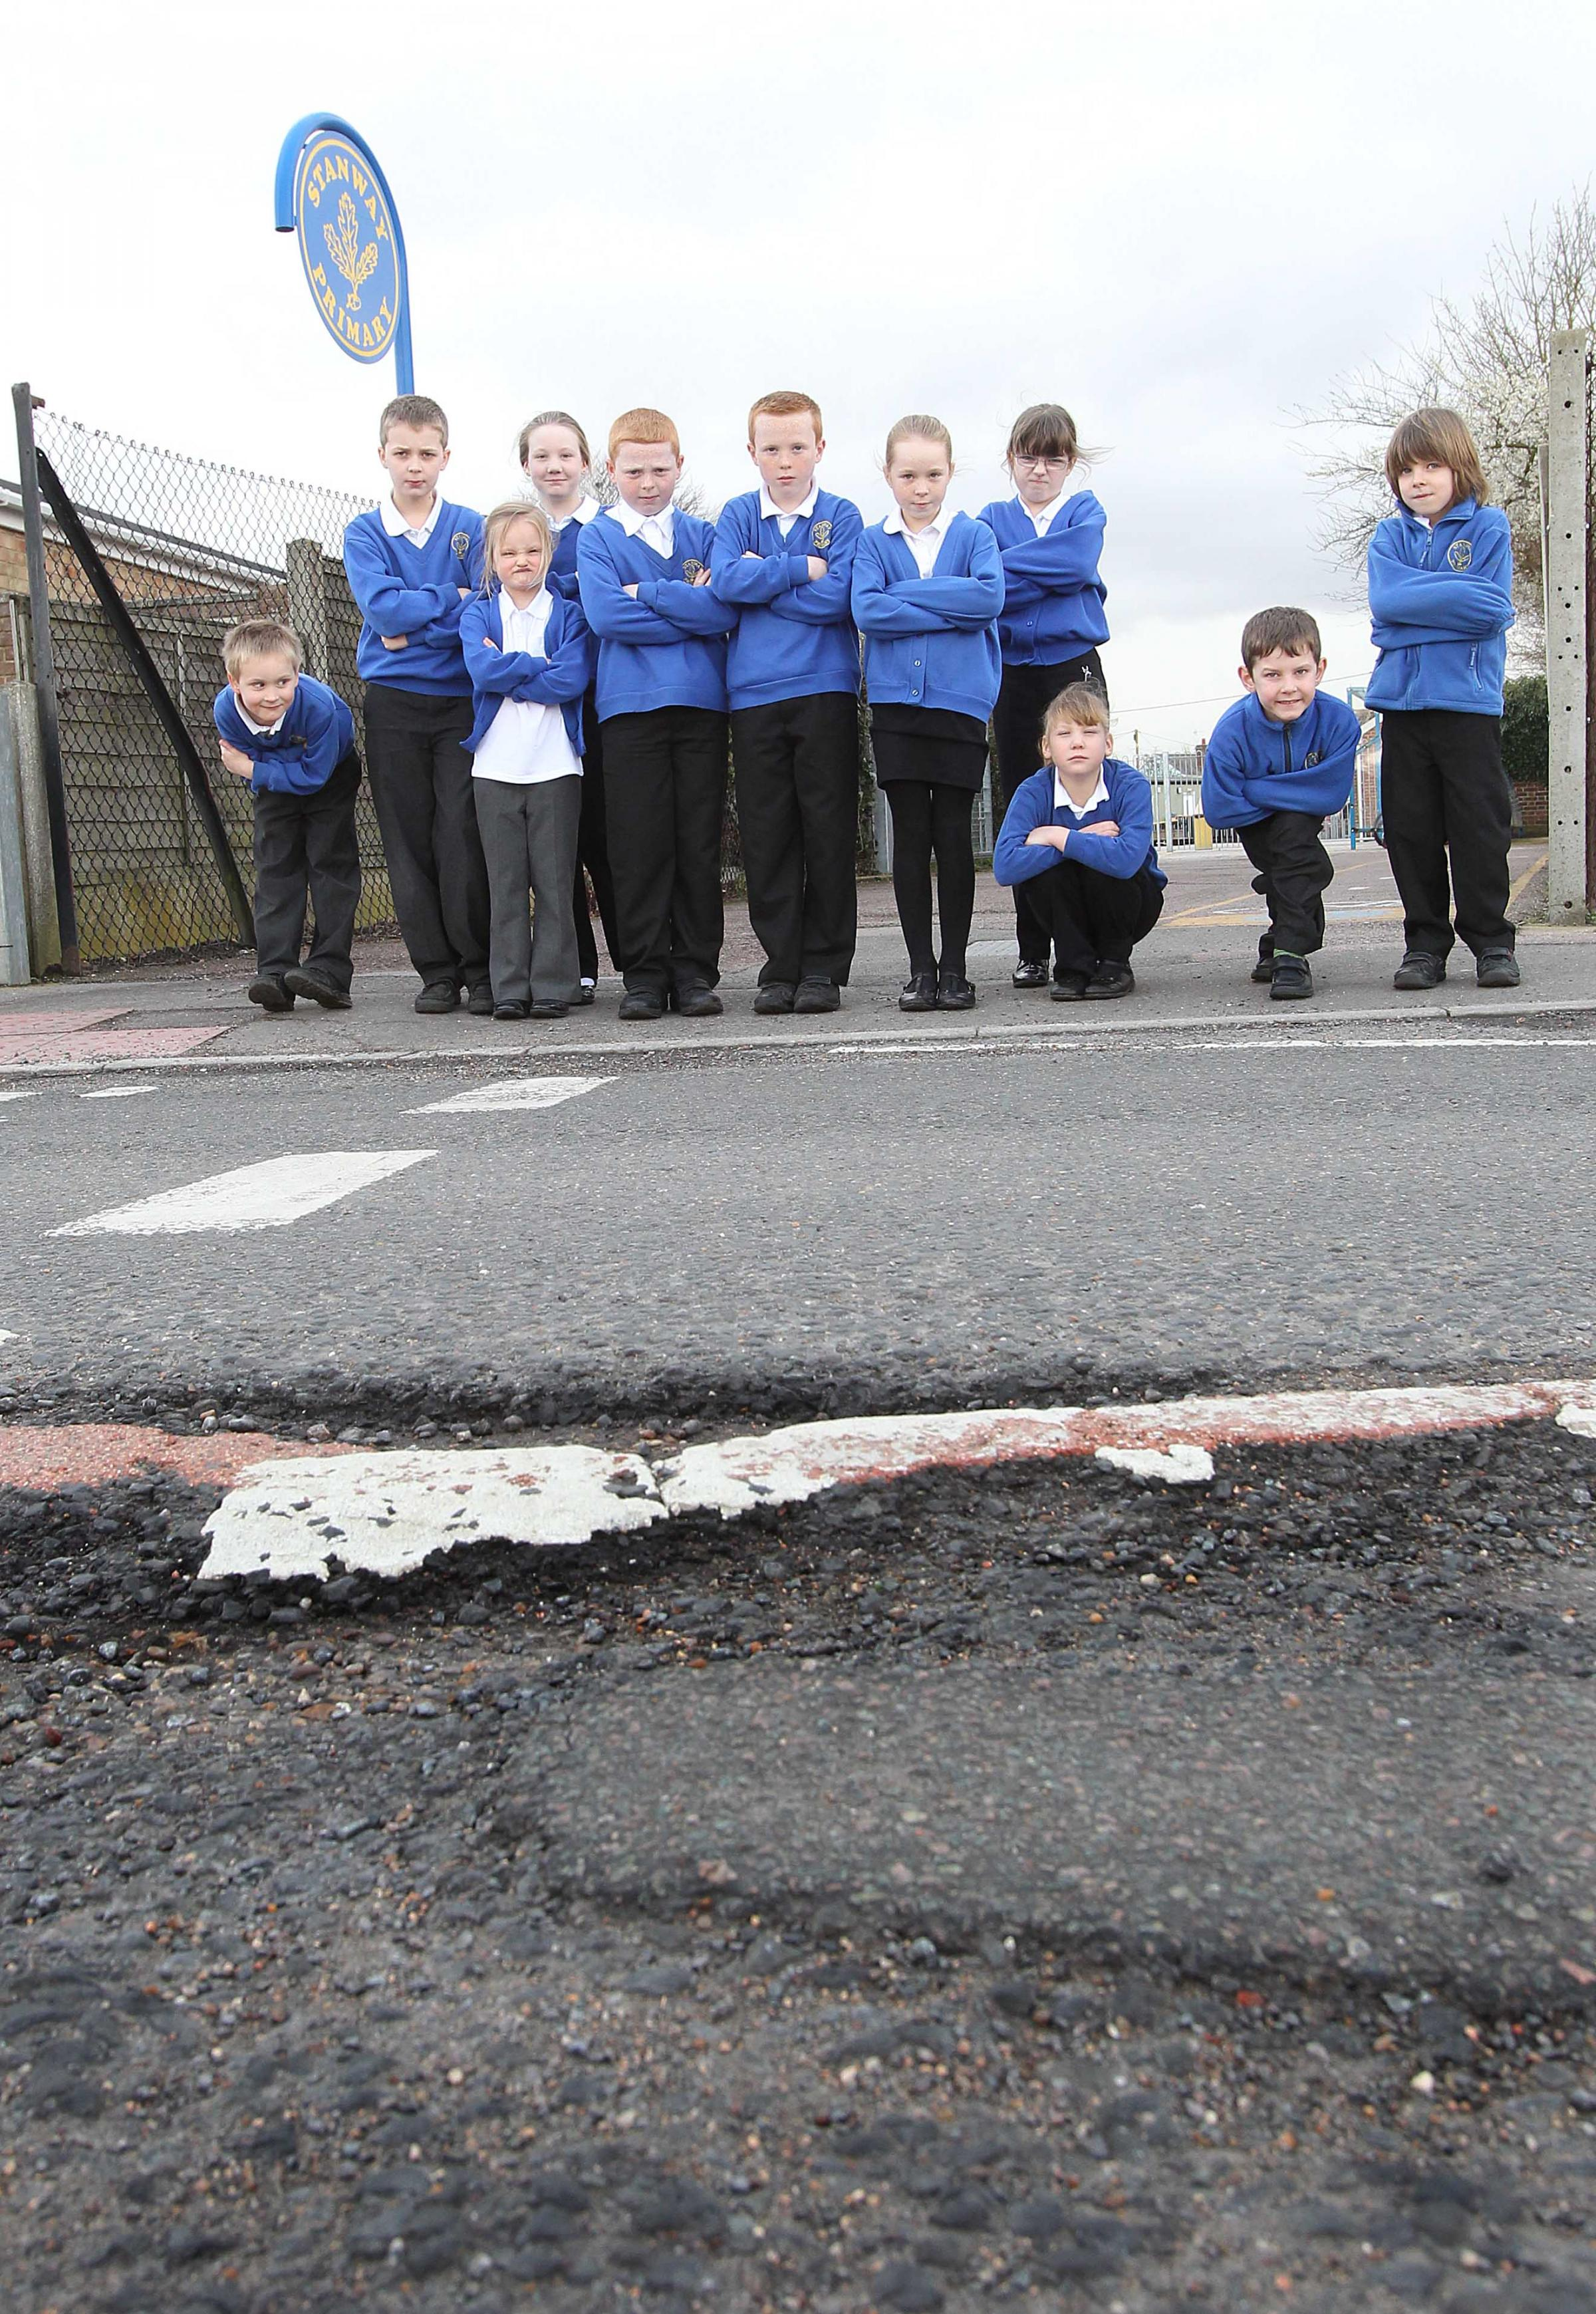 Headteacher backs pothole action call